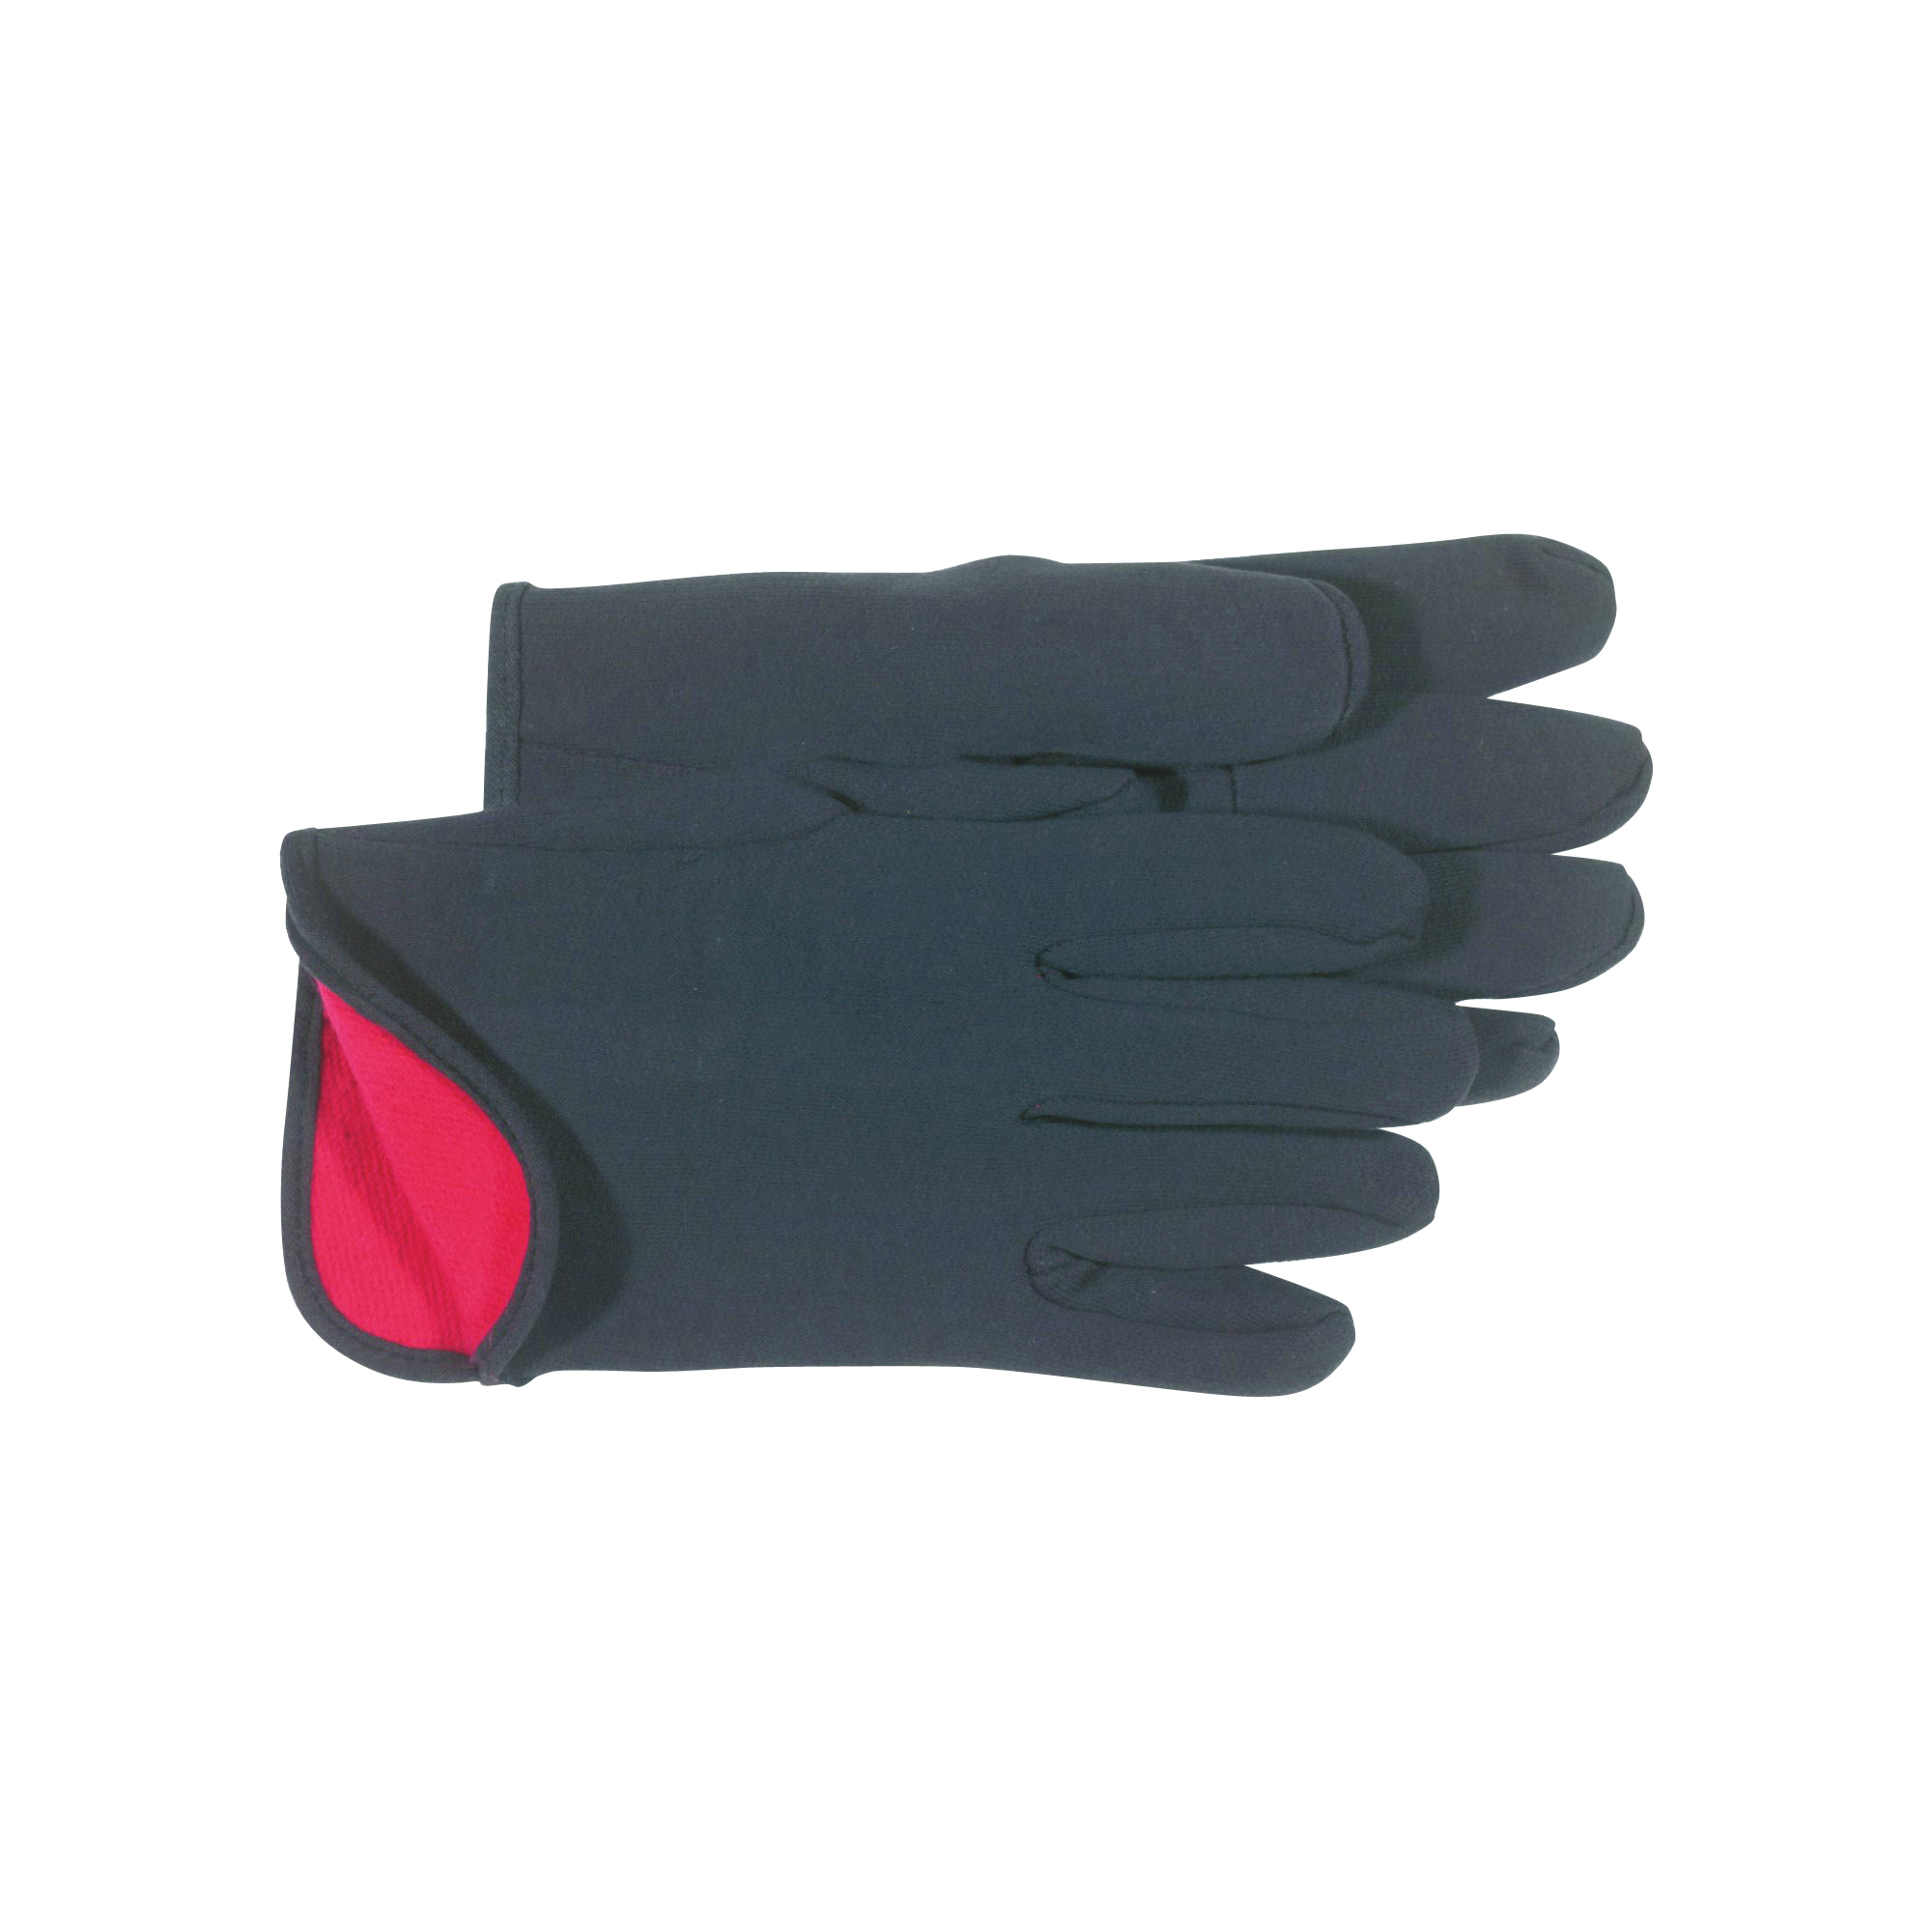 Picture of BOSS 4027 L Protective Gloves, L, Straight Thumb, Knit Wrist Cuff, Cotton/Polyester, Brown/Red